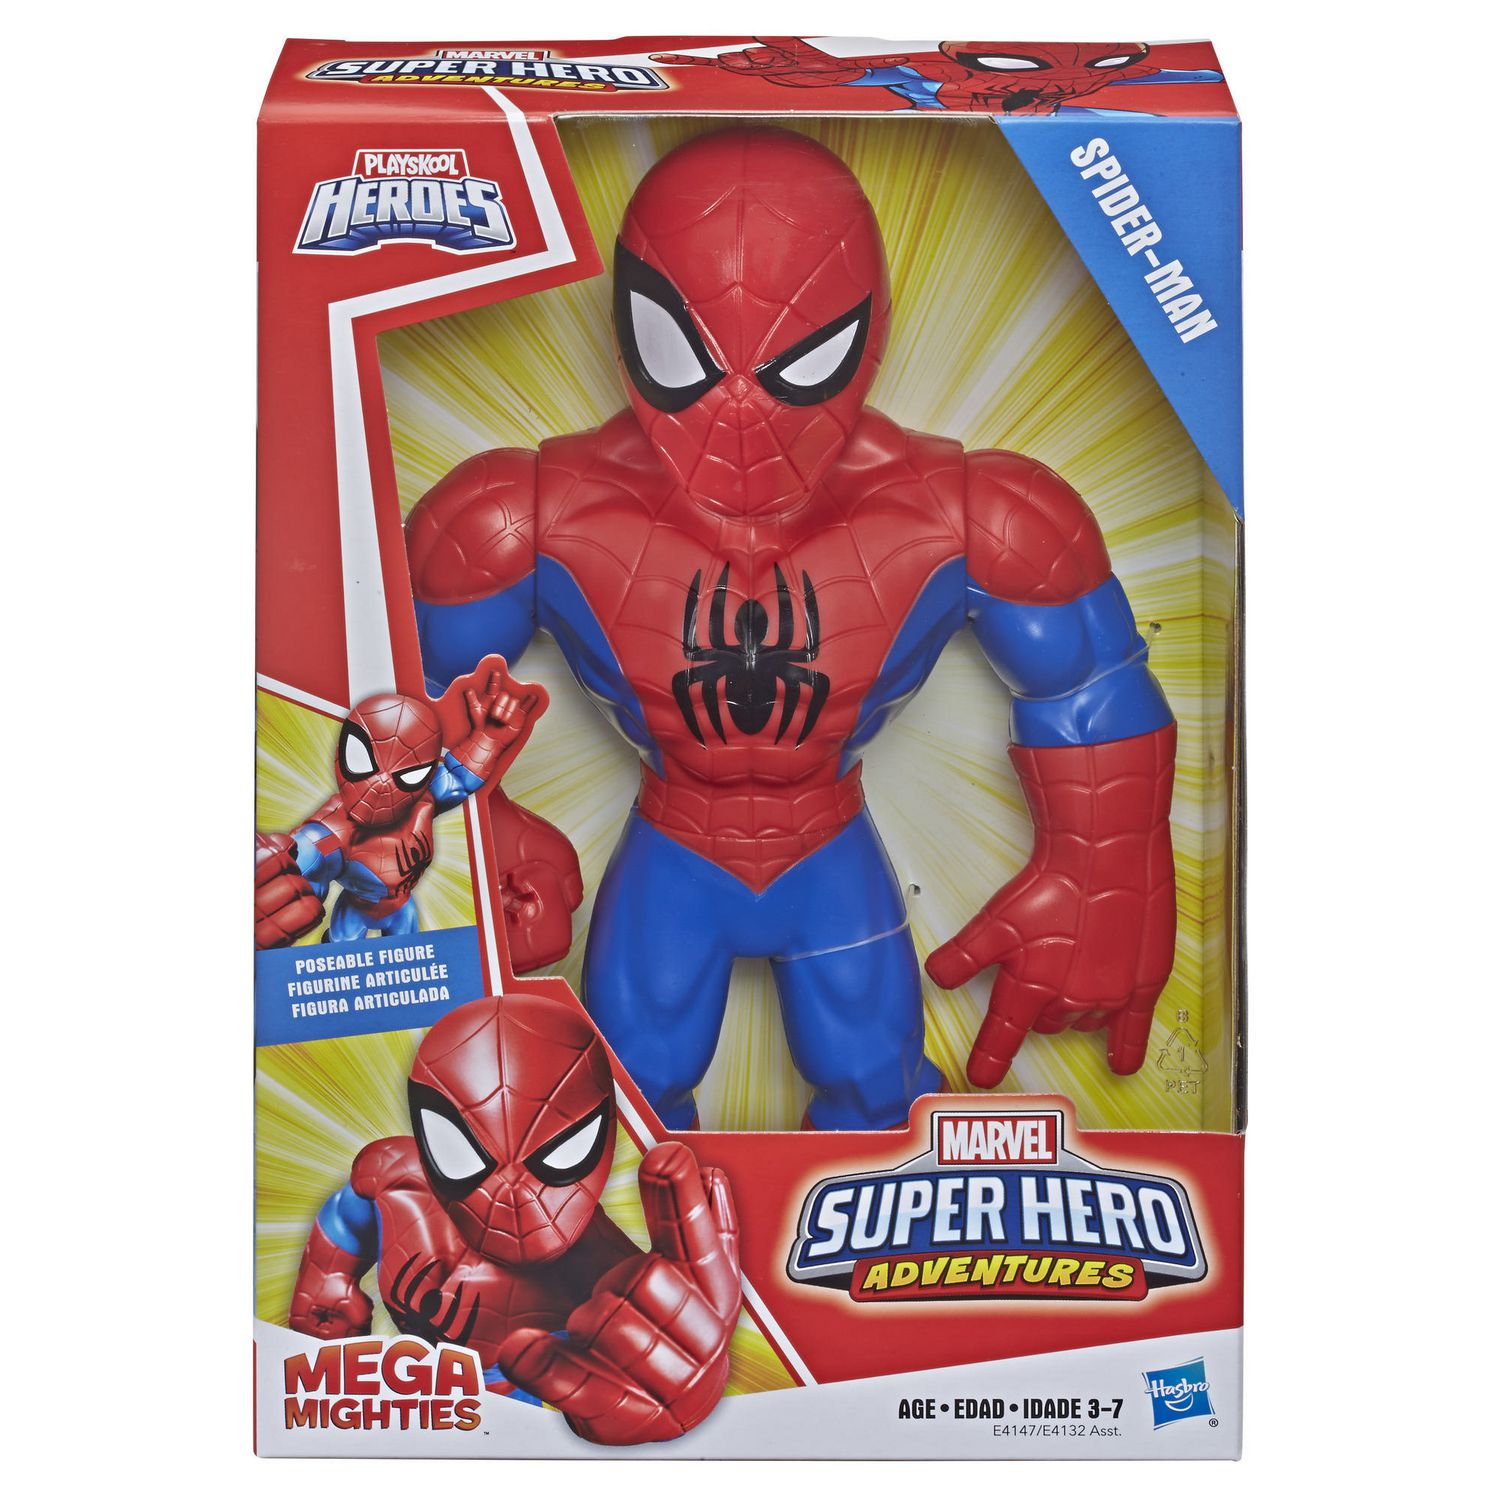 Playskool Heroes Marvel Super Hero Adventures Mega